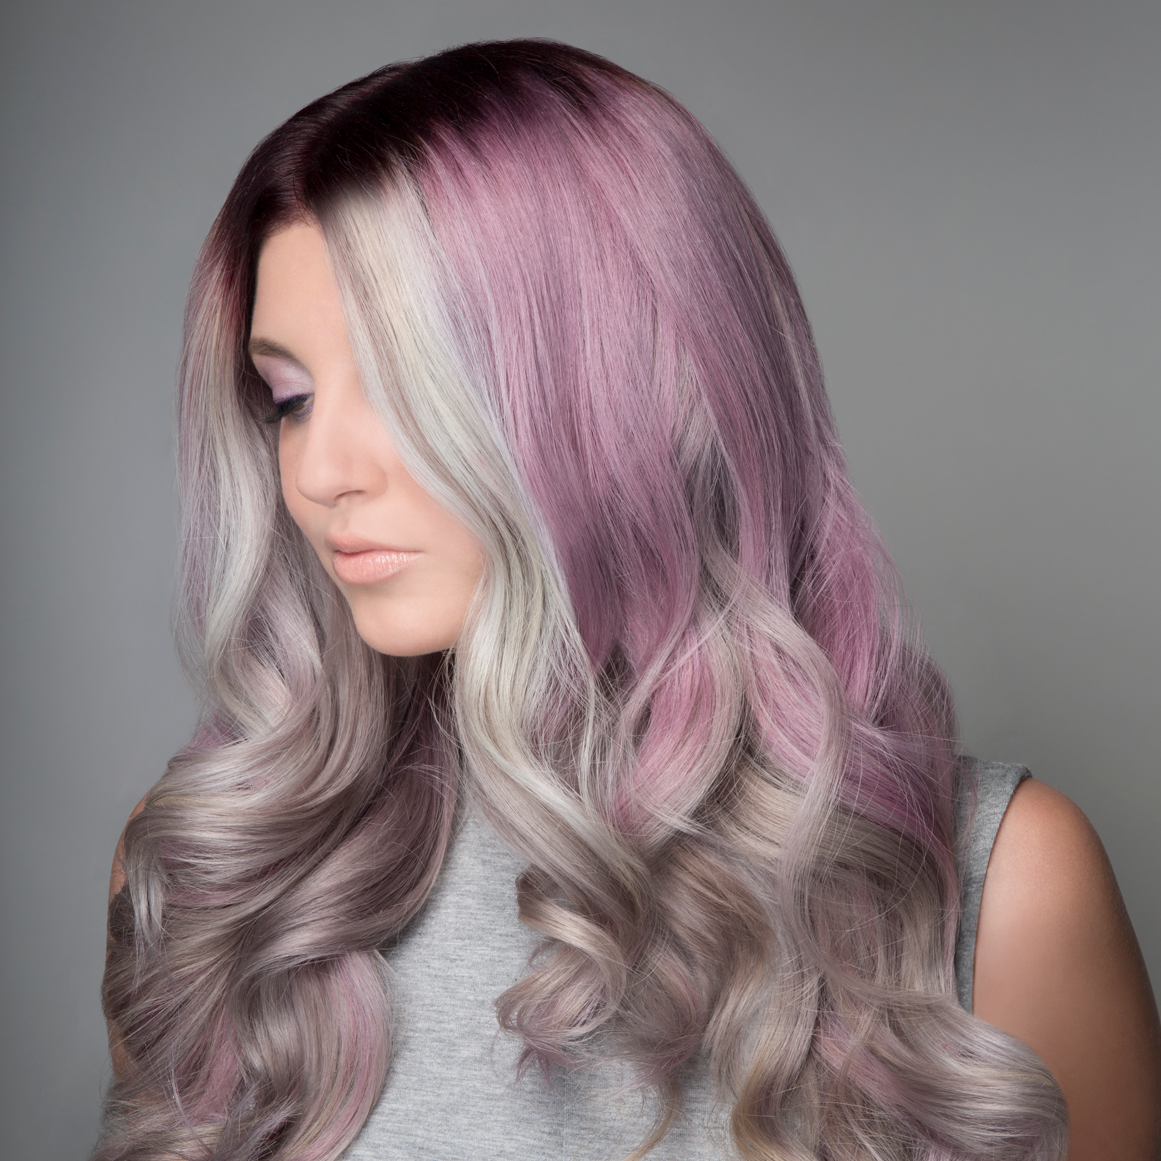 Faq Pravana Hair Color Hair Care Products For The Professional